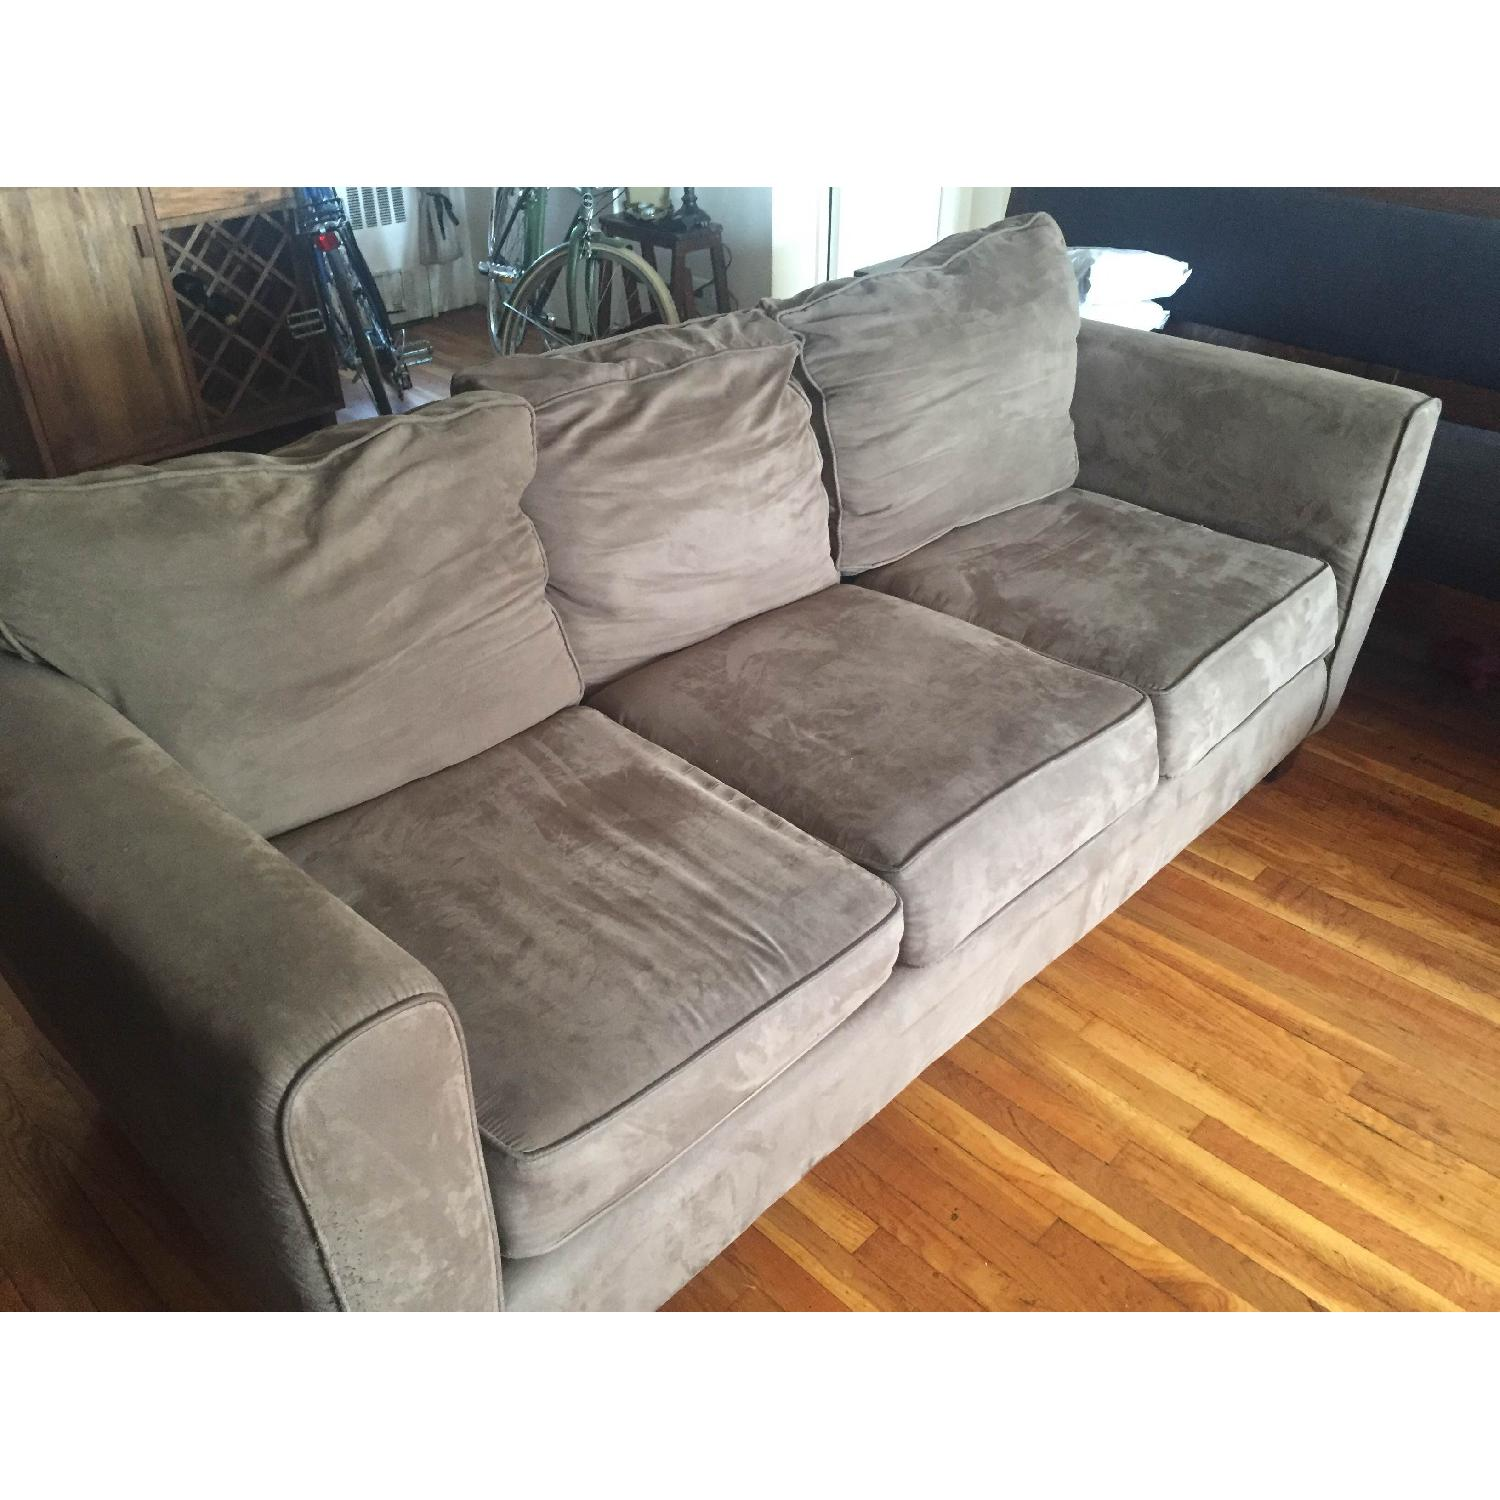 Olive Microsuede 3-Seater Couch & Ottoman - image-4